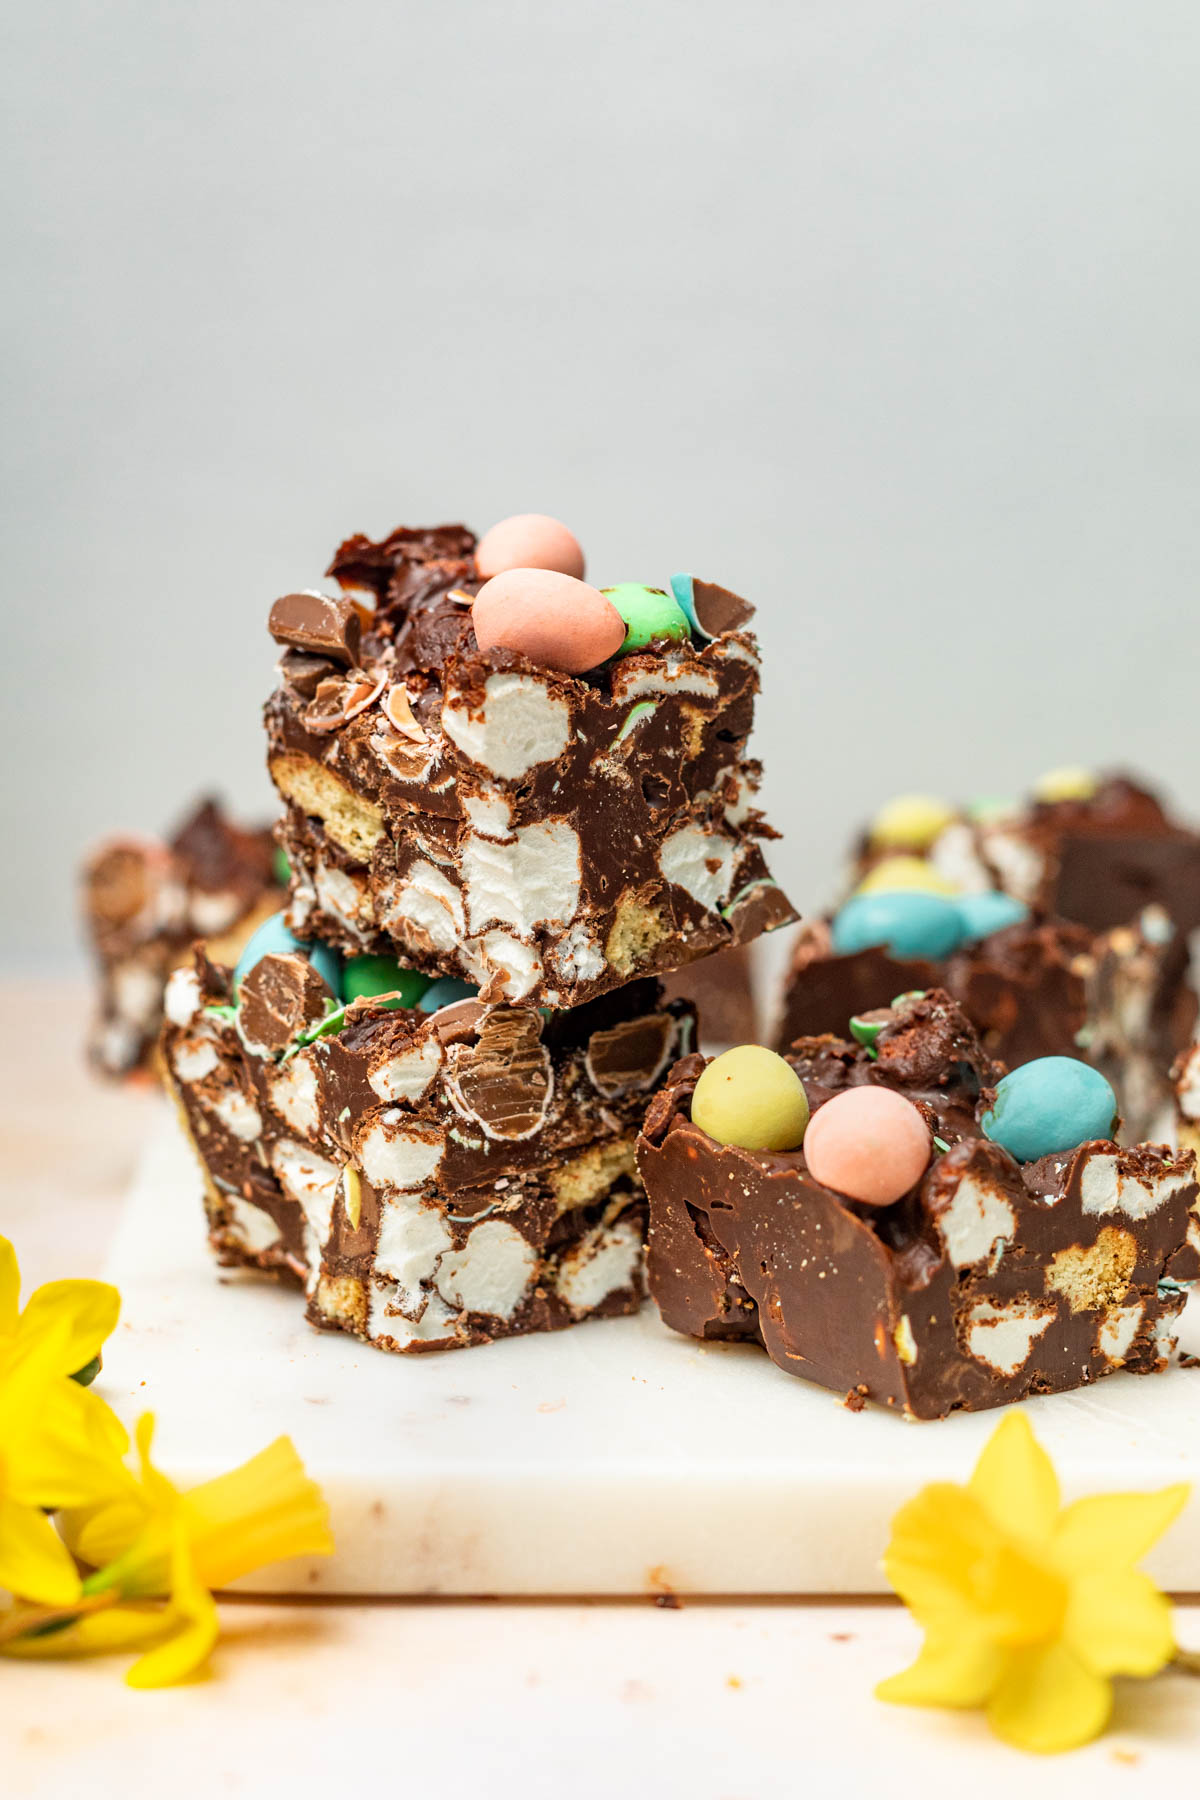 Small squares of candy with daffodils.